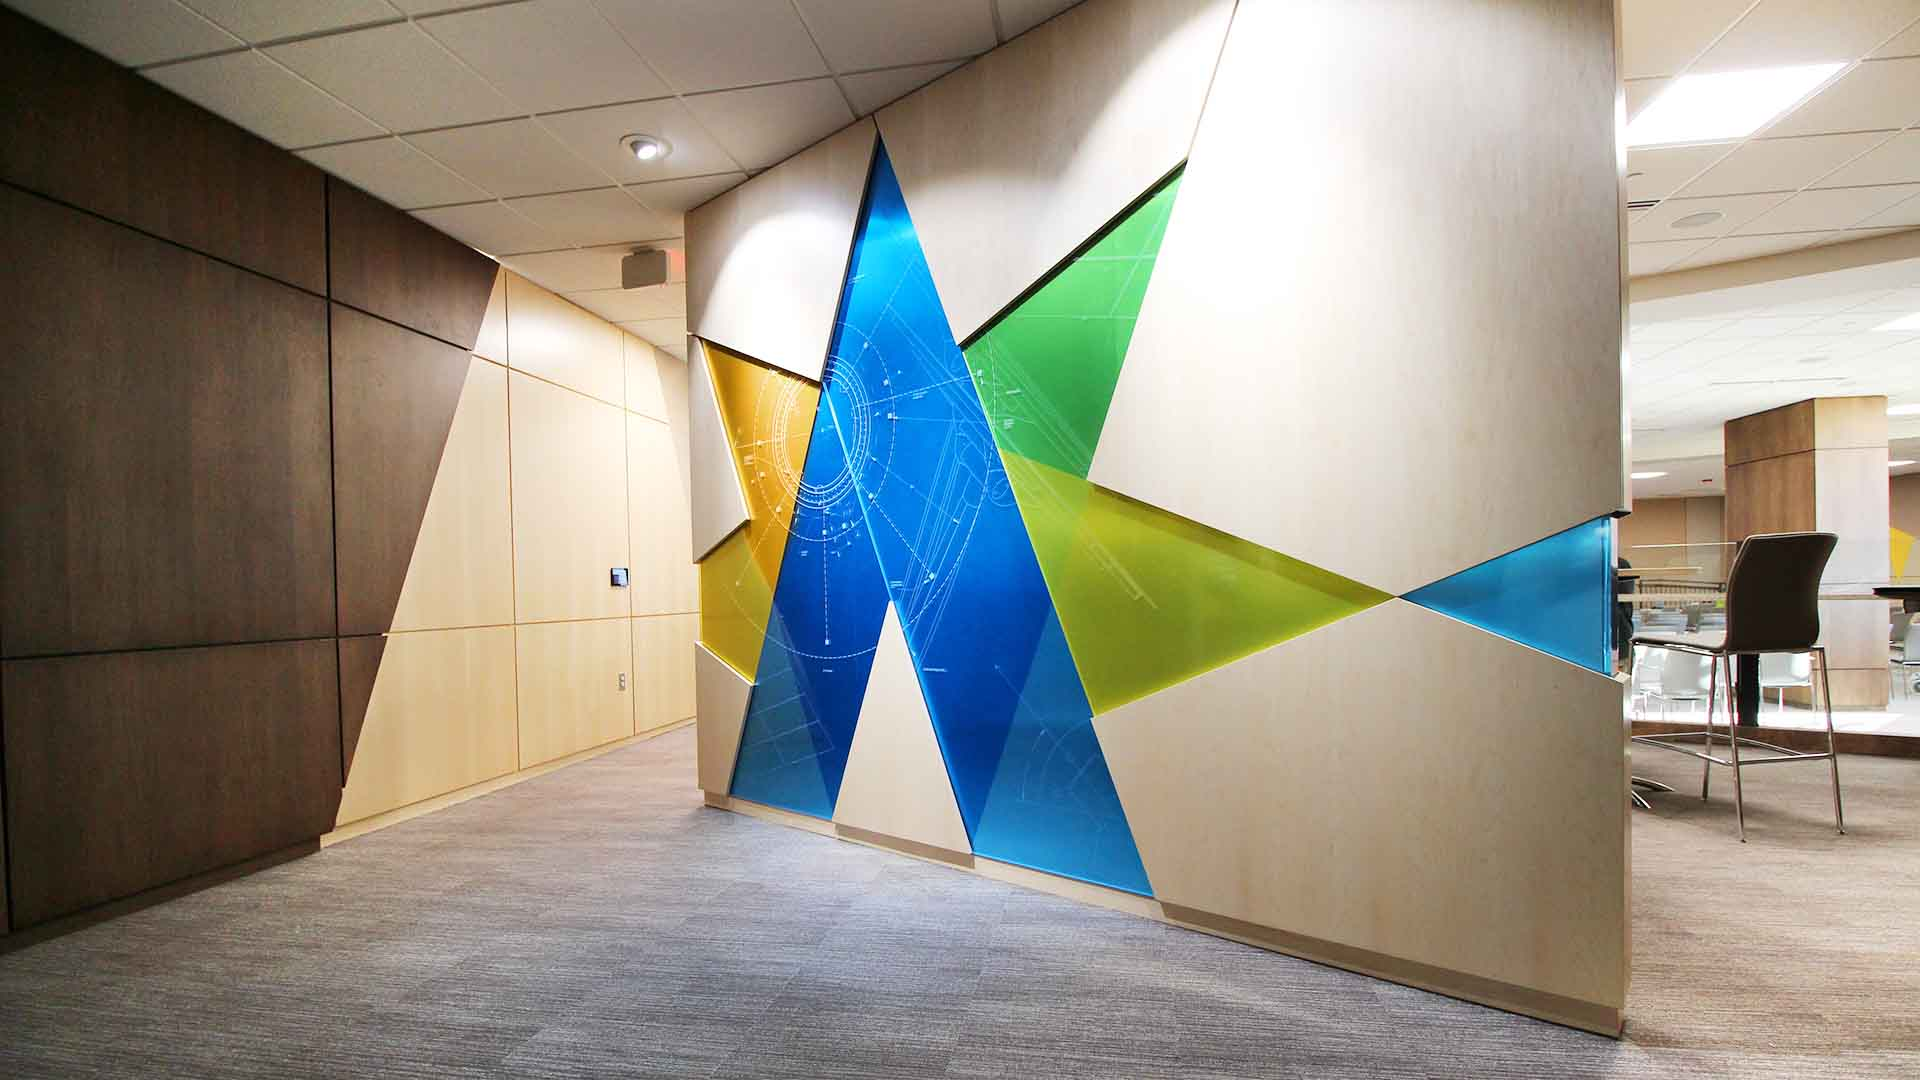 Inside conference center is a feature wall with the alliant energy logo in full color in a wood wall with an overlay of architectural drawings of energy structures